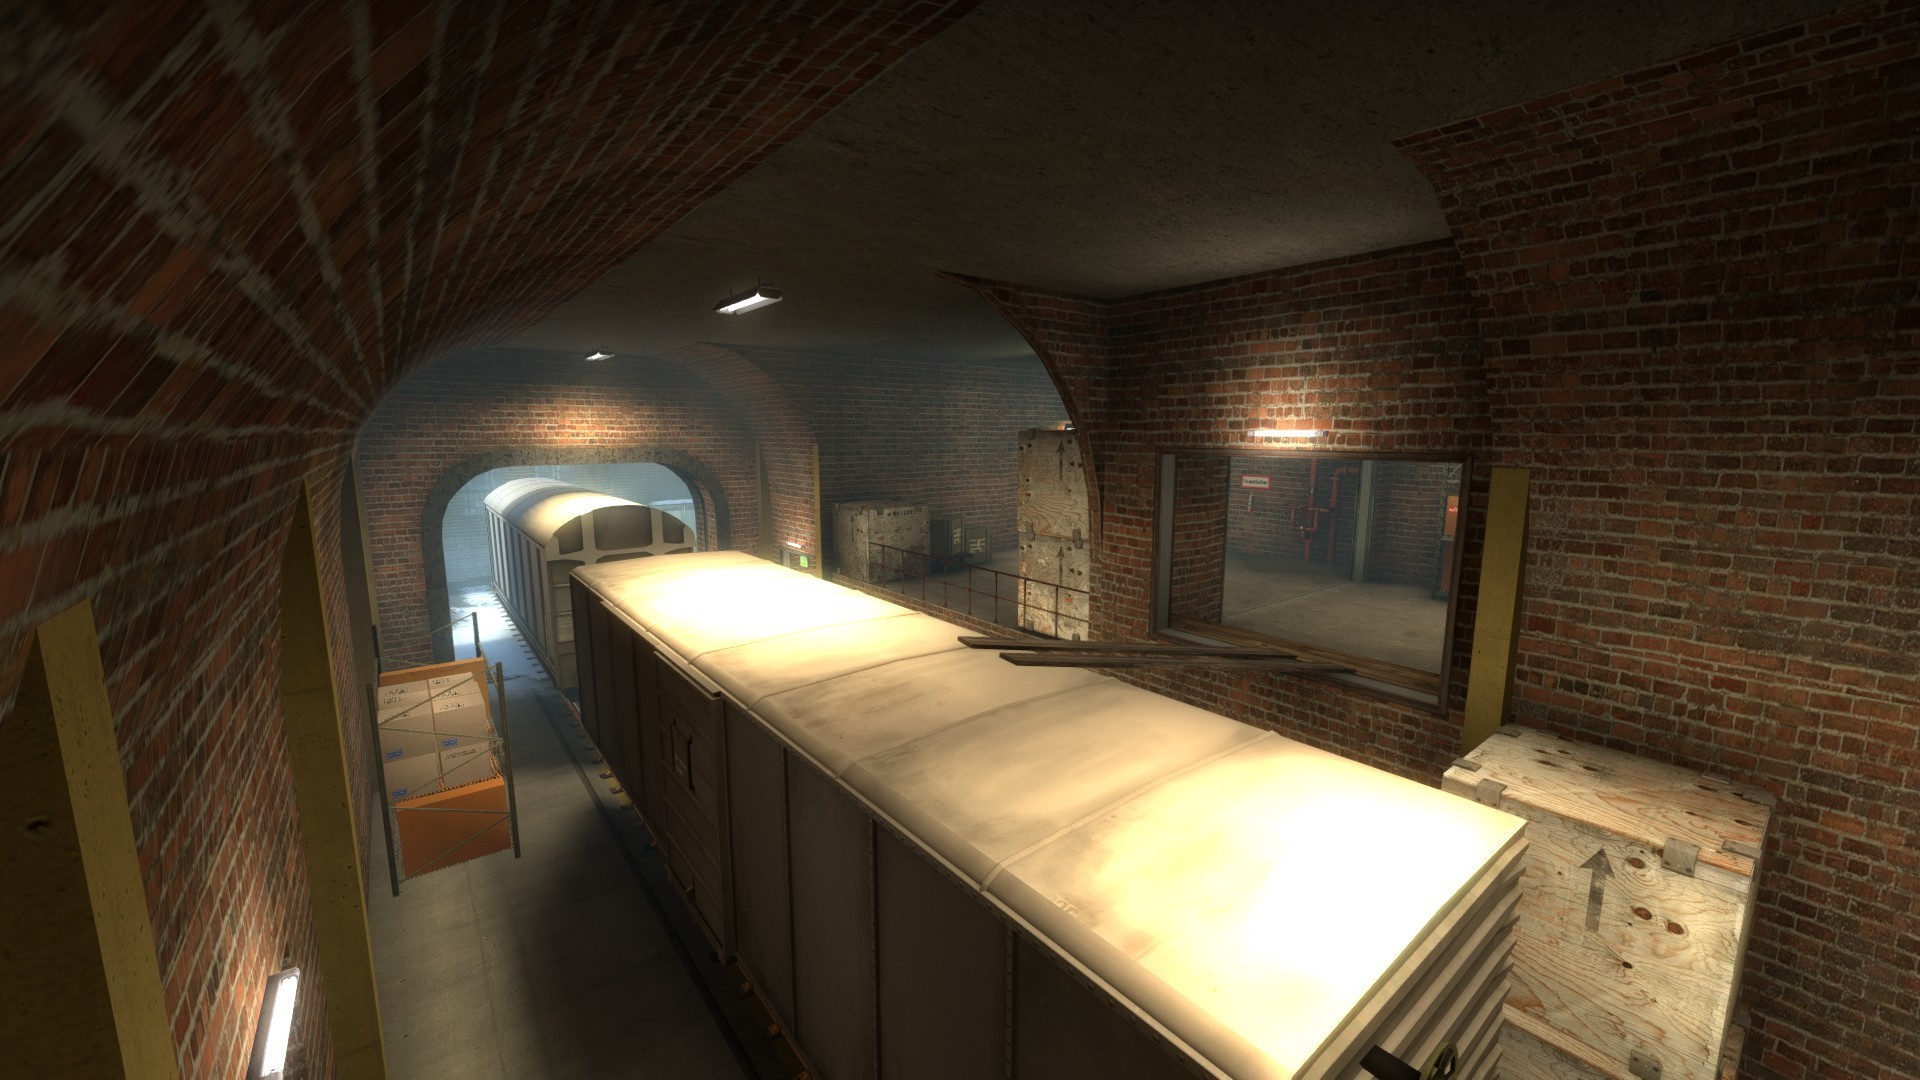 Counter-Strike: Global Offensive Map - de_frost_csgo_final1 screenshot 3